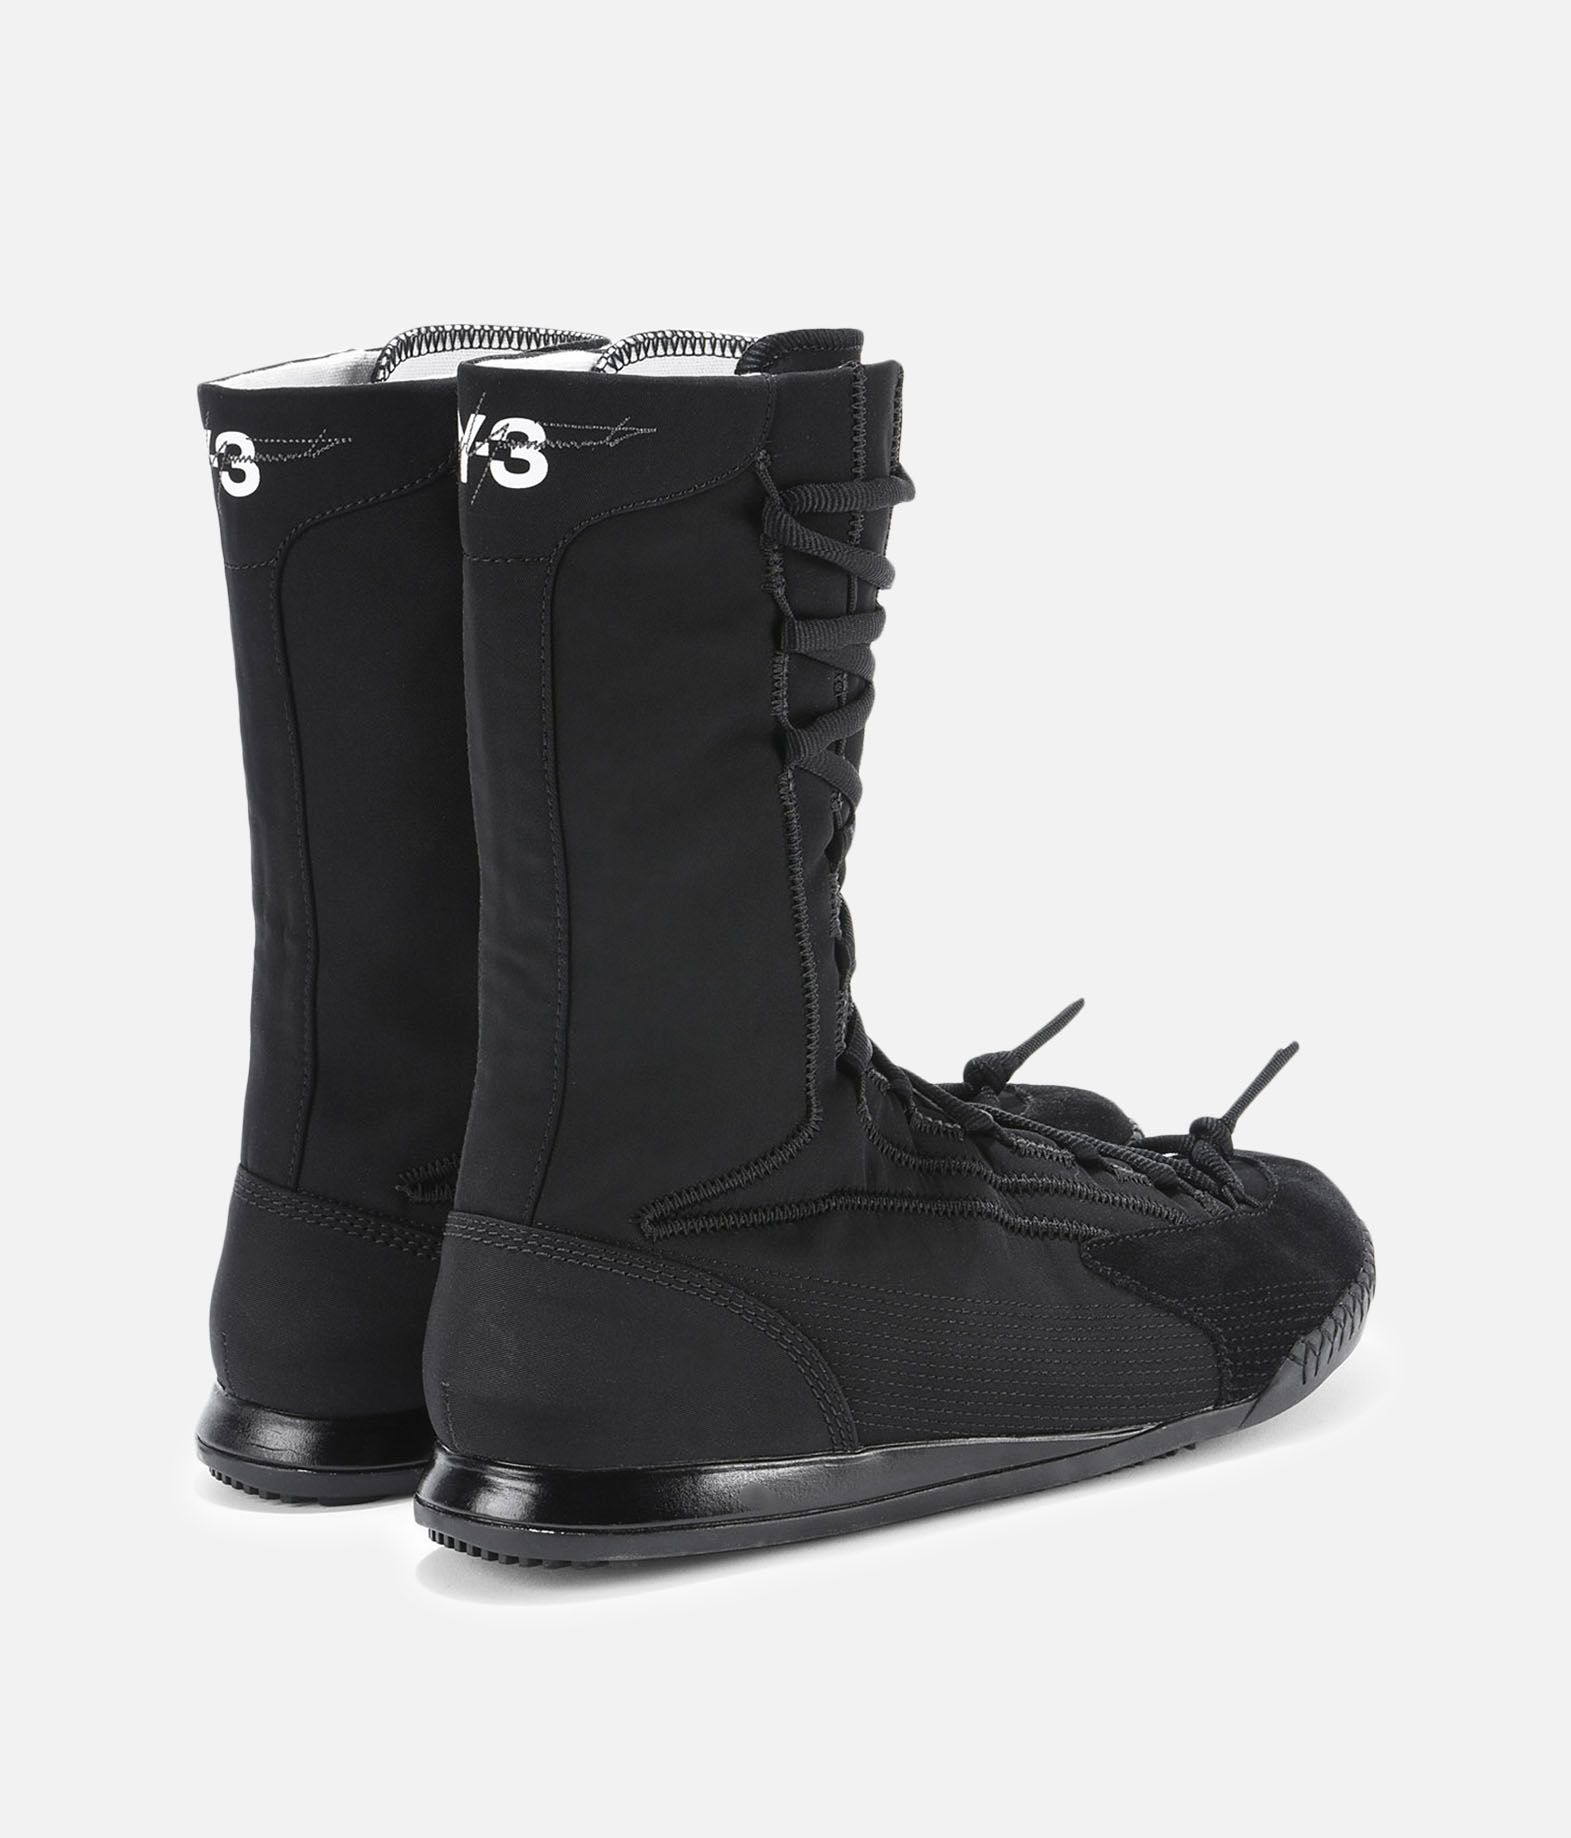 Y-3 Y-3 Yuuki High-top sneakers Woman c